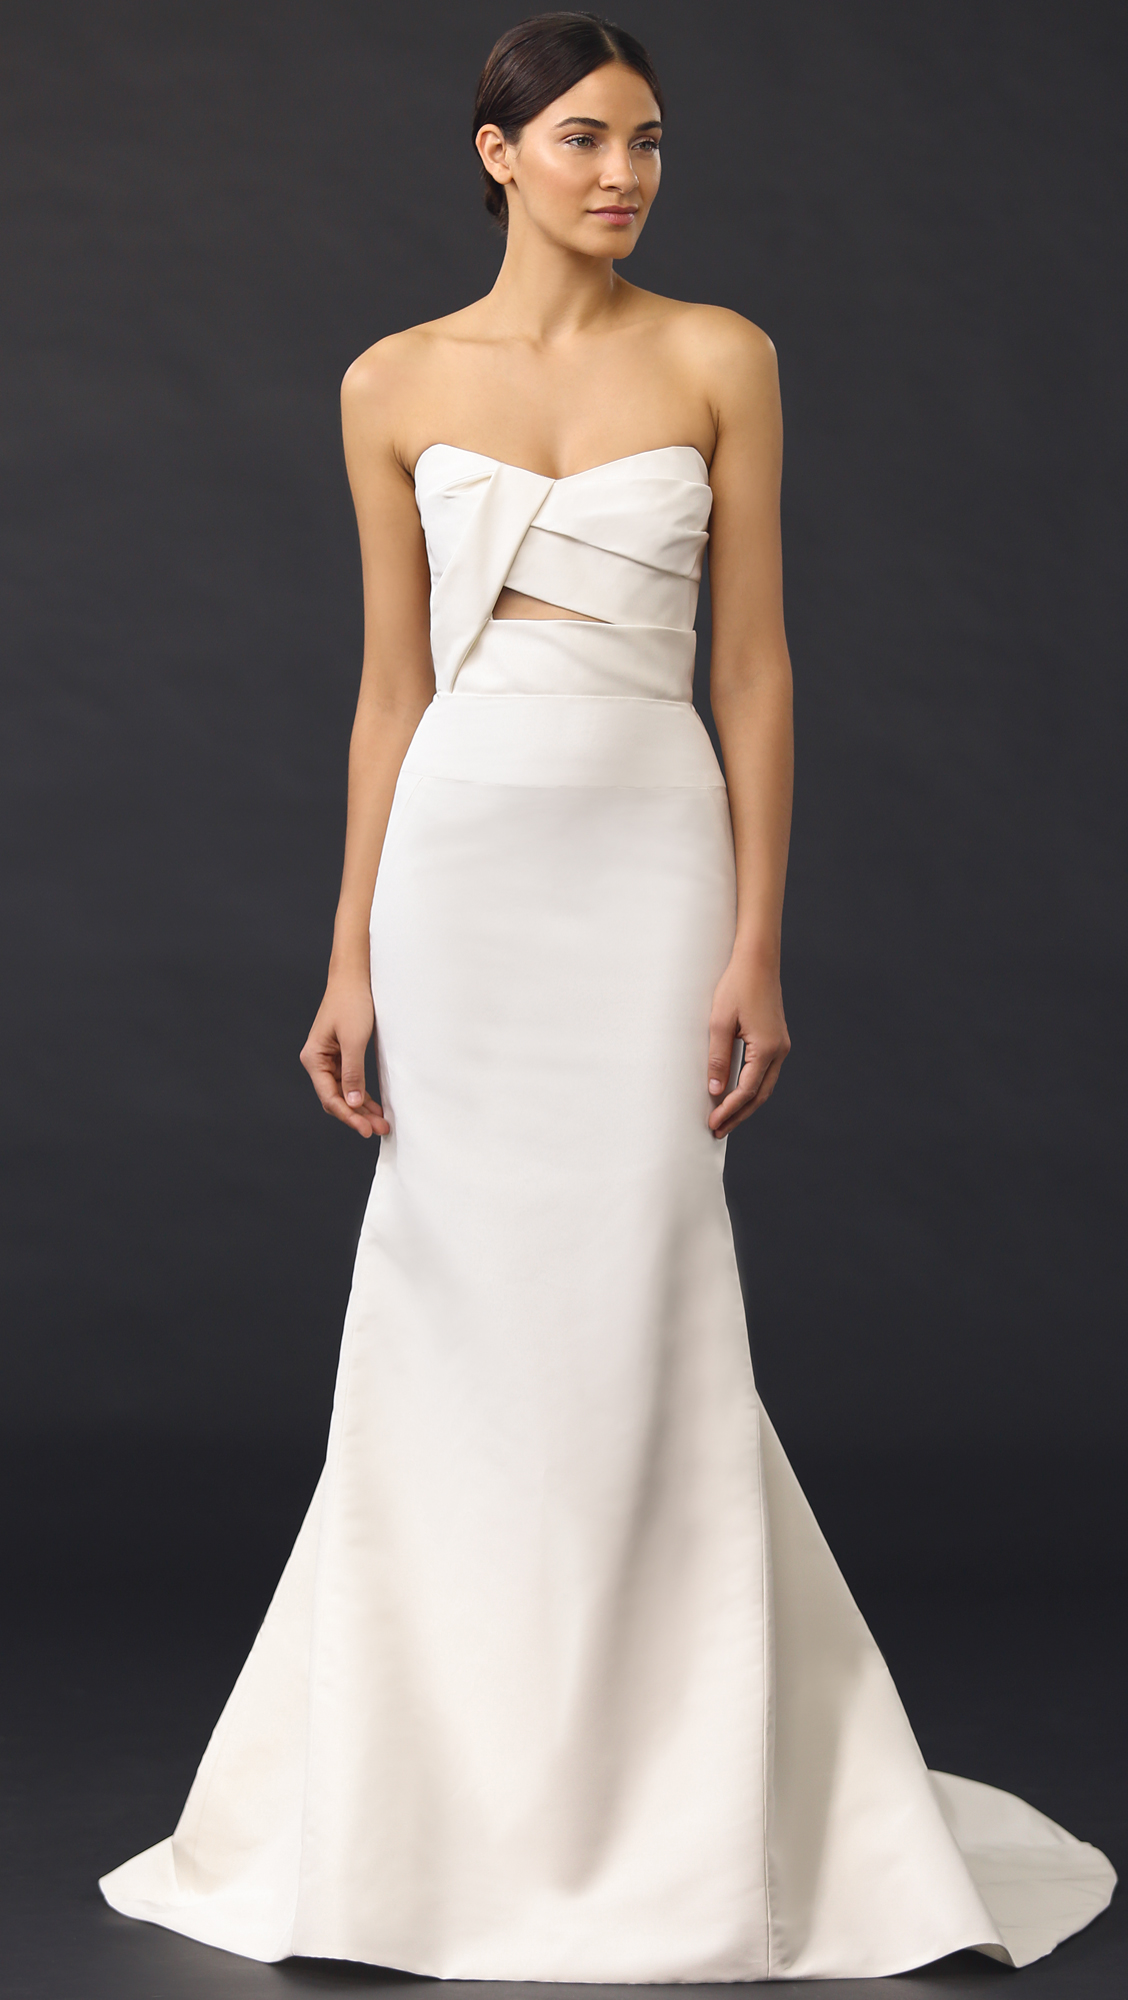 J. Mendel Adelaide Strapless Bustier Gown | SHOPBOP